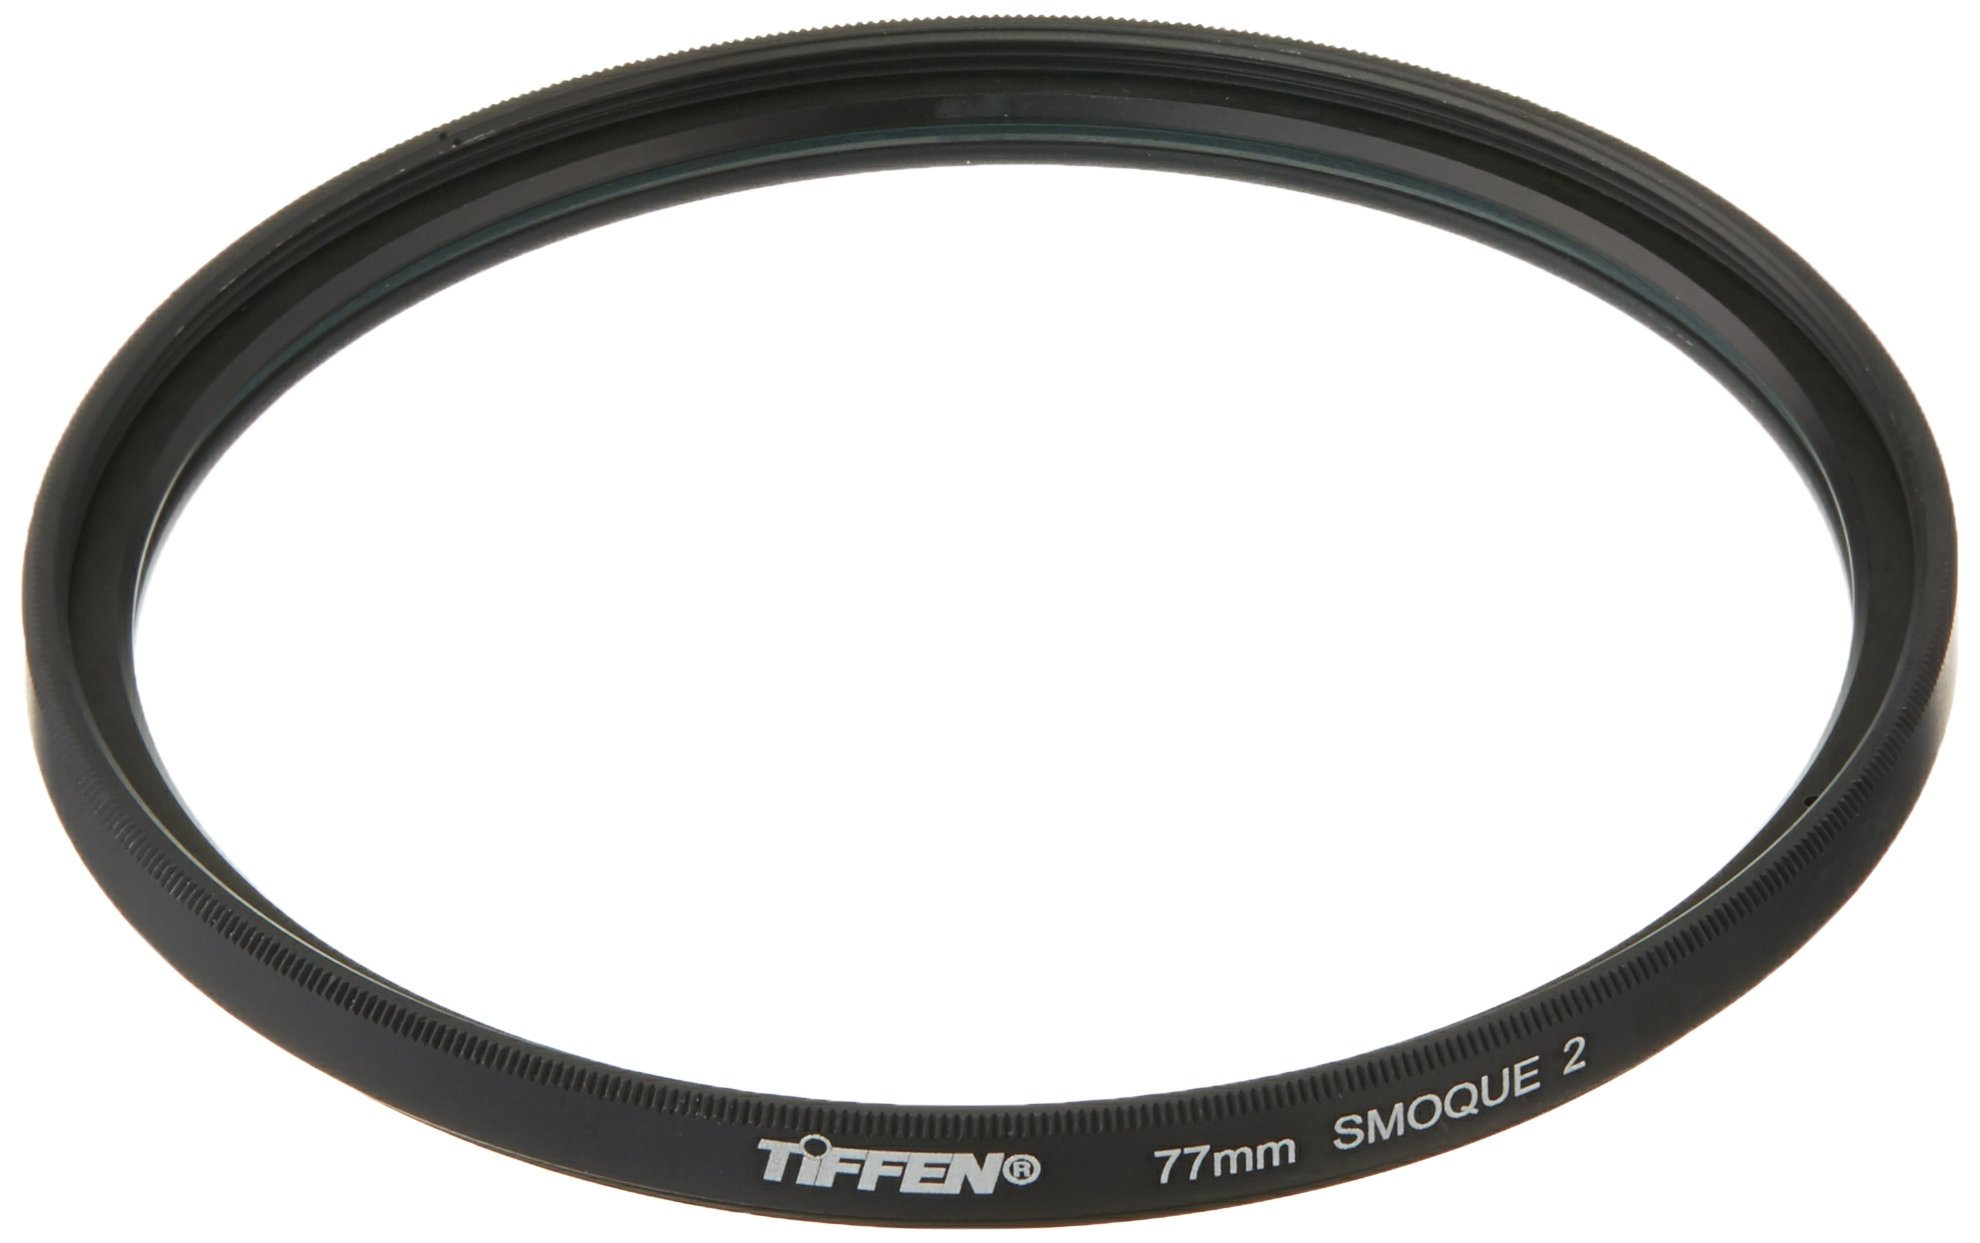 Tiffen 77SMQ2 77mm Smoque 2 Filter